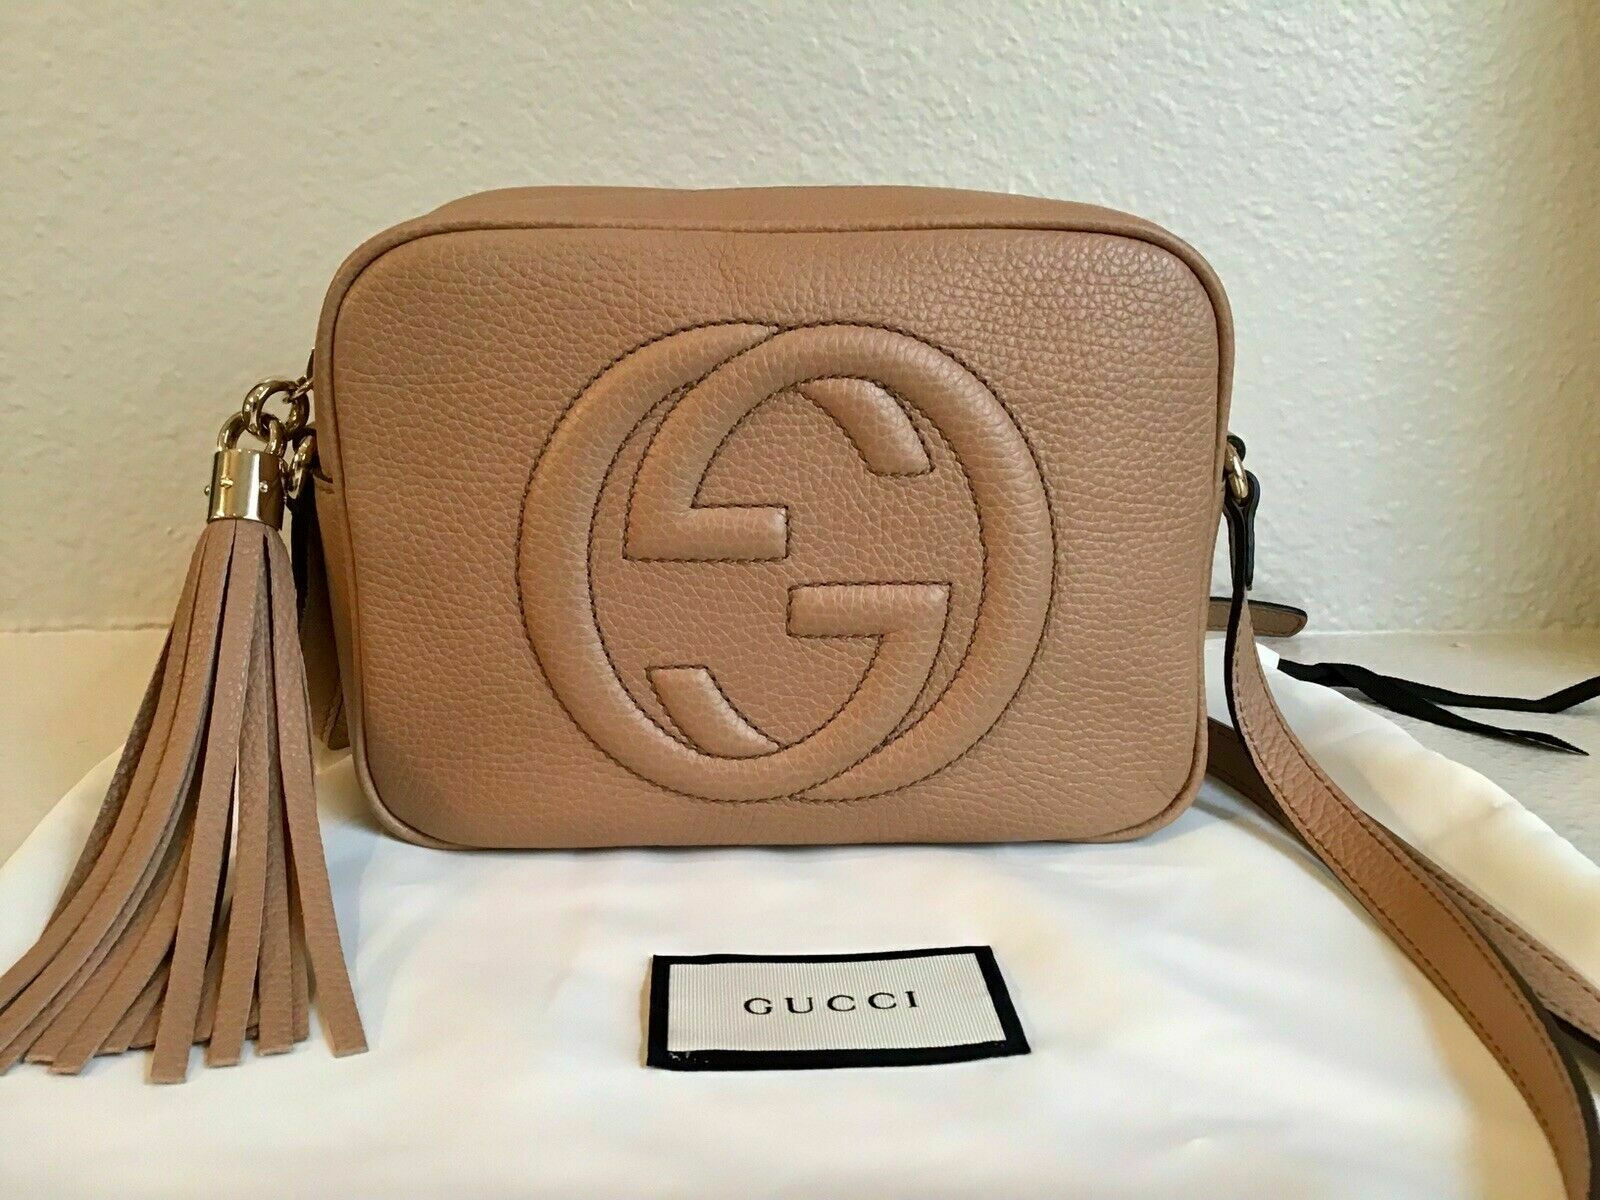 7dadb11f1 Details about Pre-Sale! New Authentic Gucci GG Soho Leather Disco Bag Rose  Beige